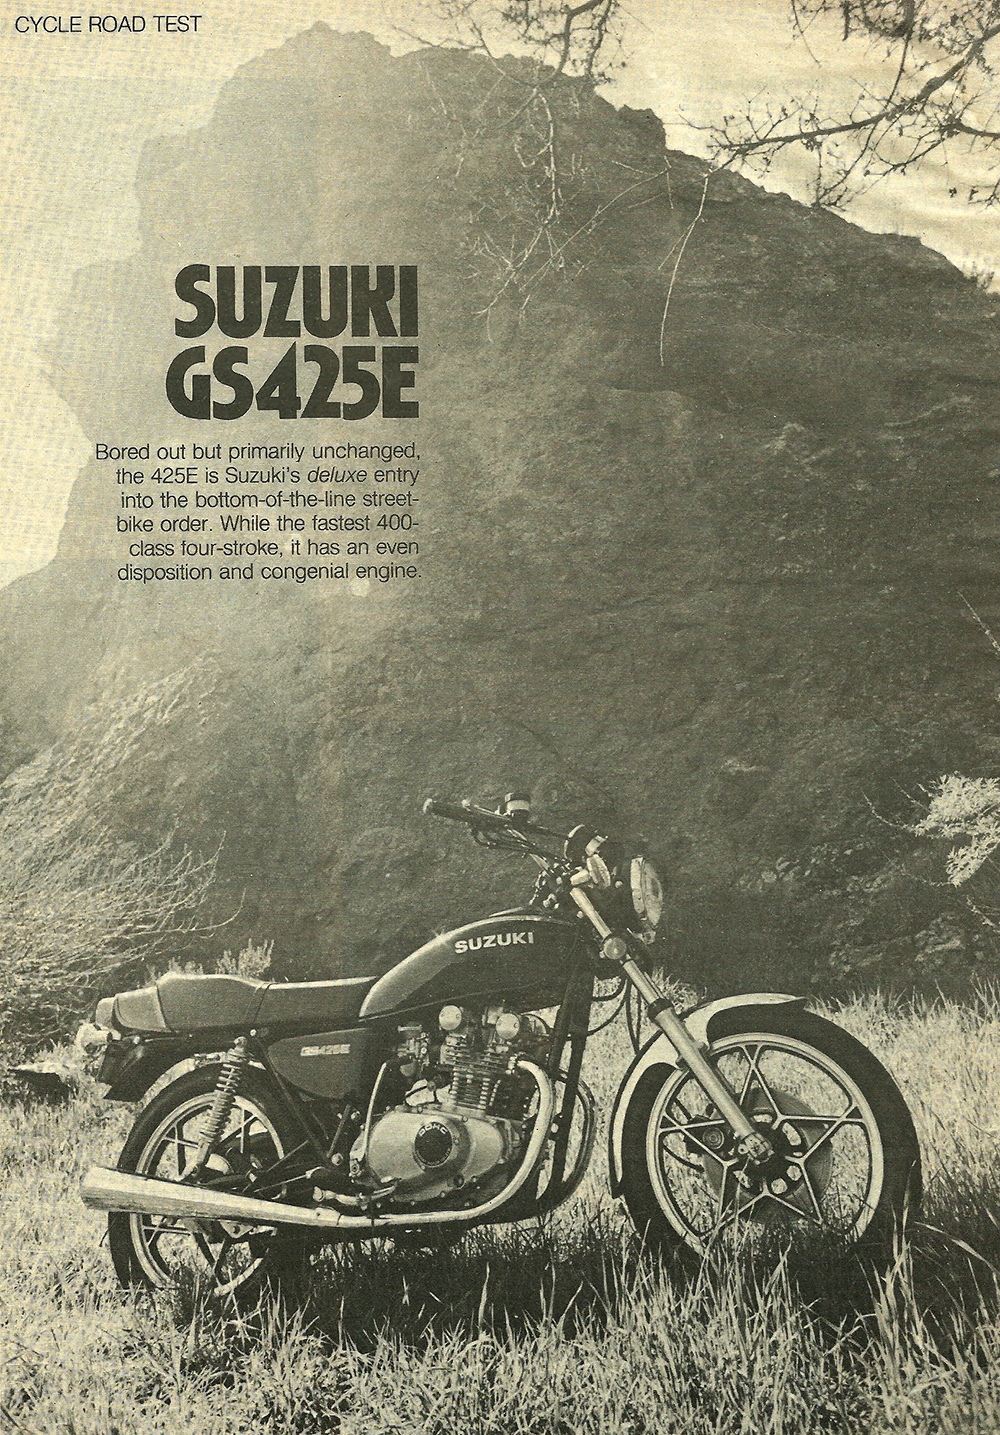 1979 Suzuki GS425E road test 01.jpg